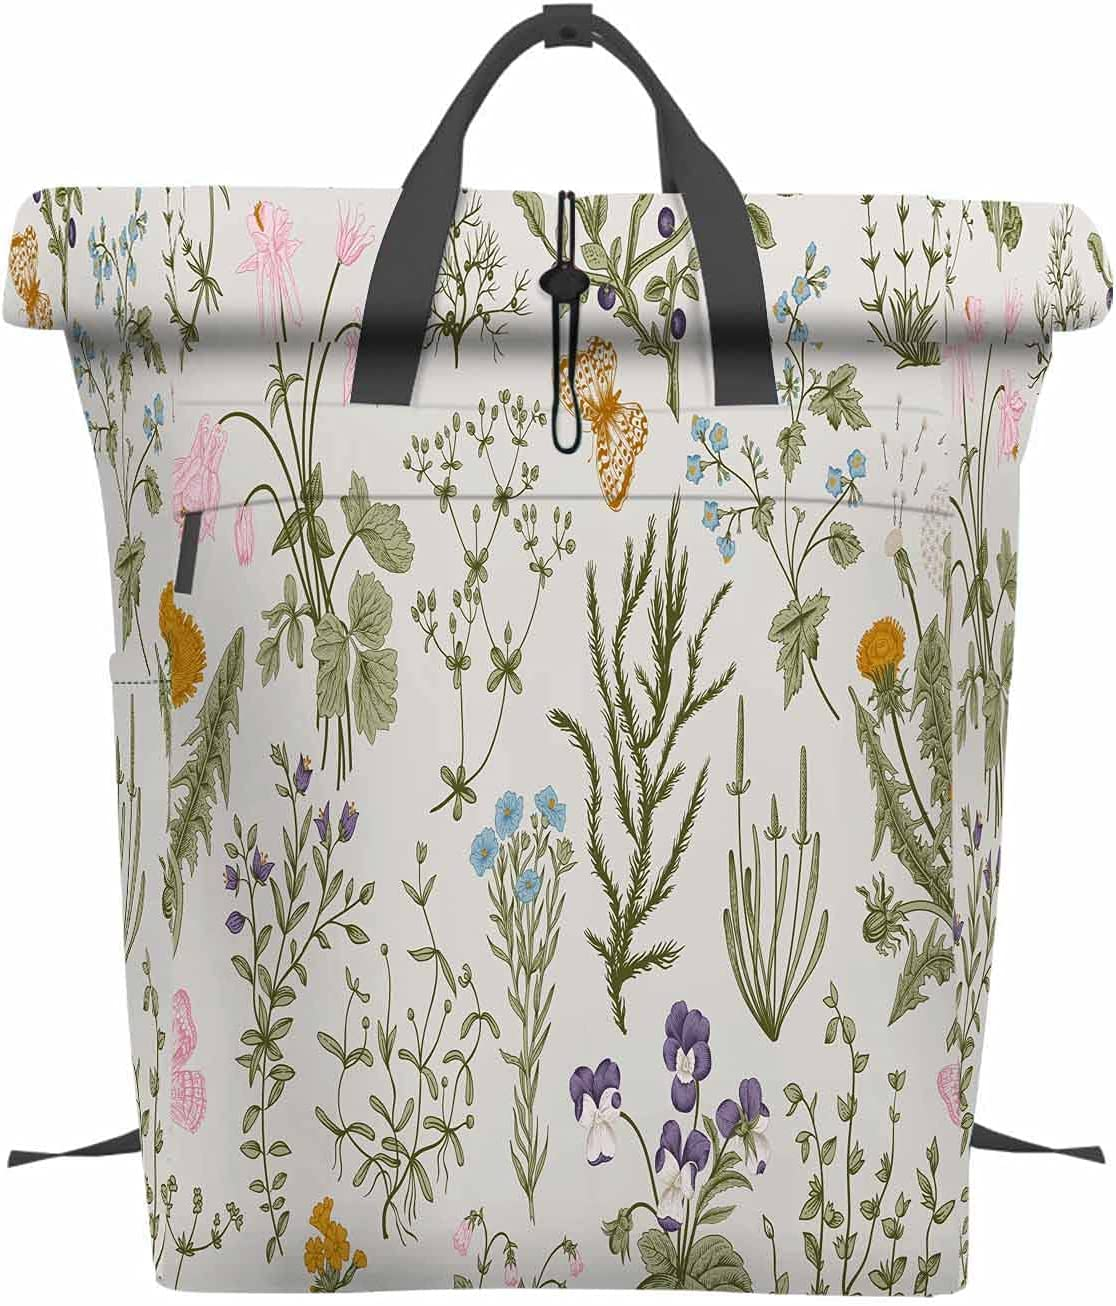 Beabes Spring new work one after another Floral Inexpensive Pattern Portable Backpack Herbs Wild And F Vintage